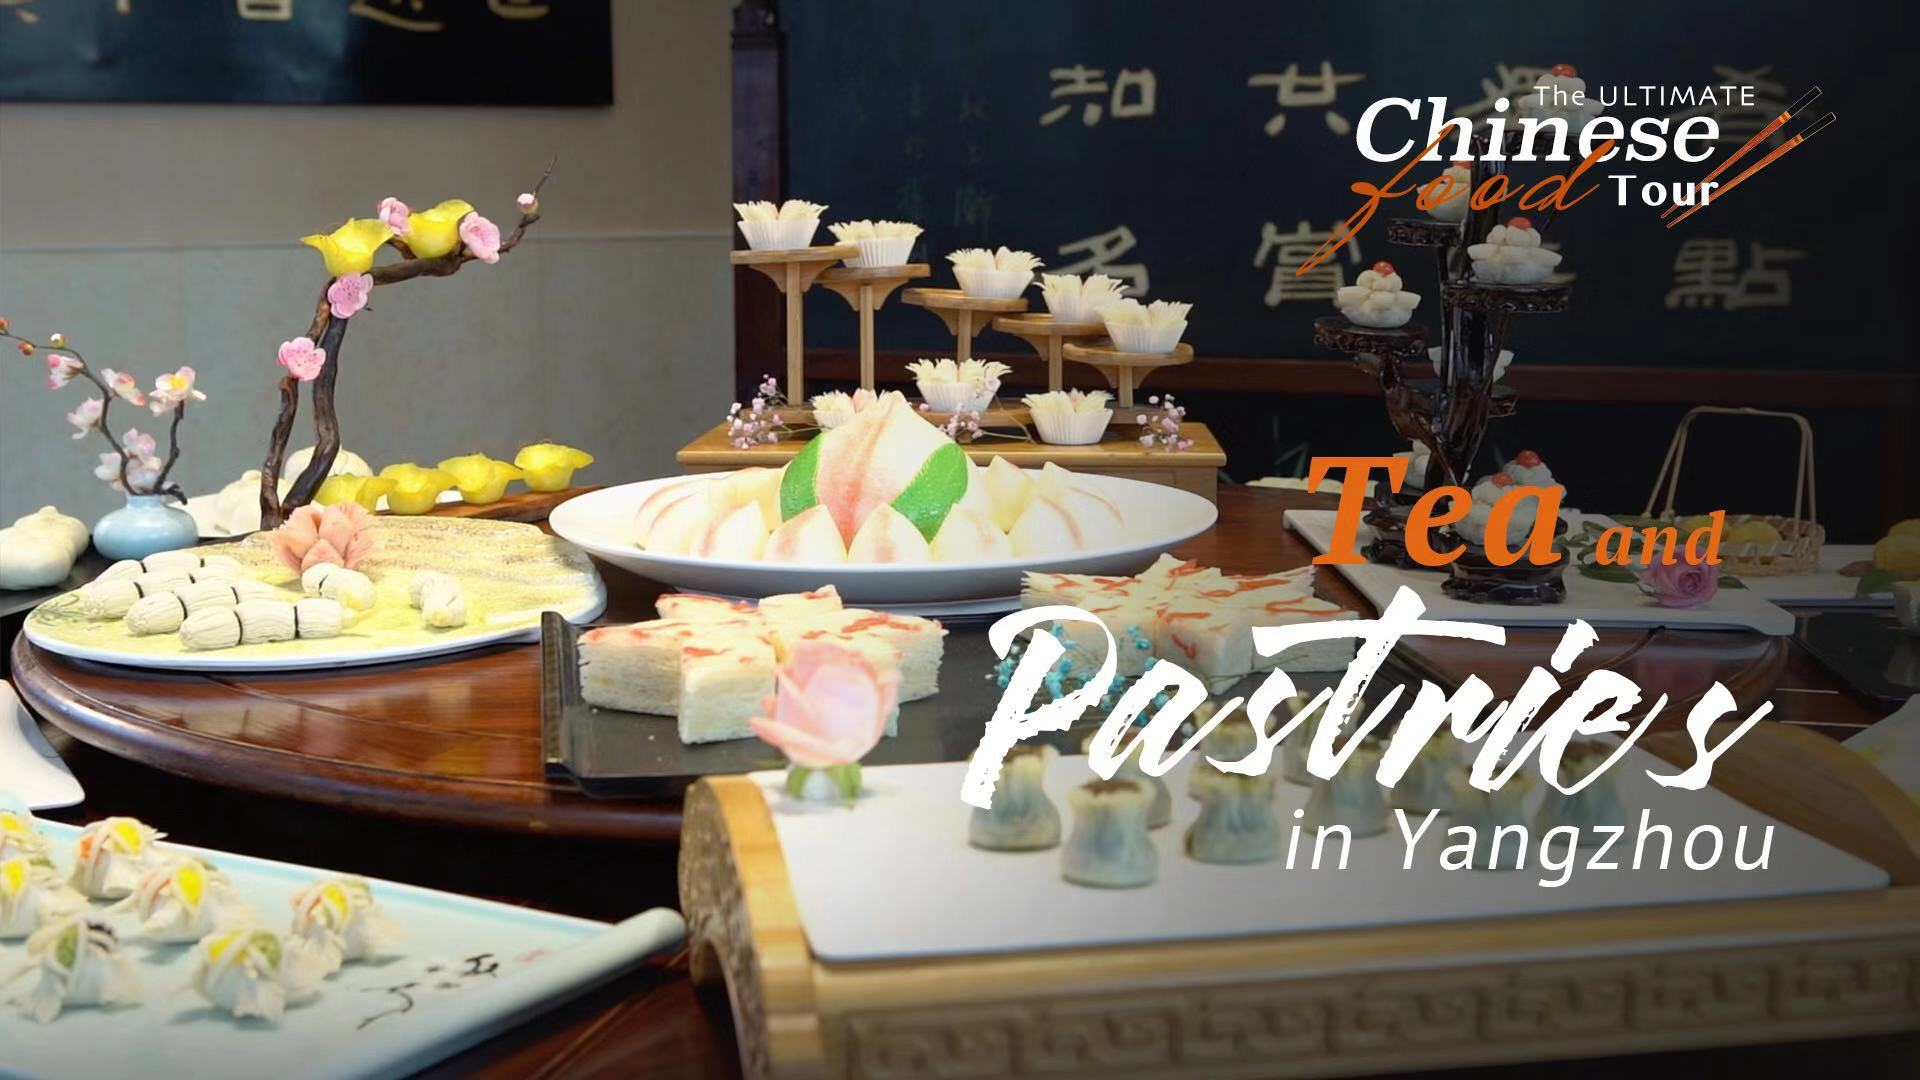 The ULTIMATE Chinese Food Tour: Tea and pastries in Yangzhou